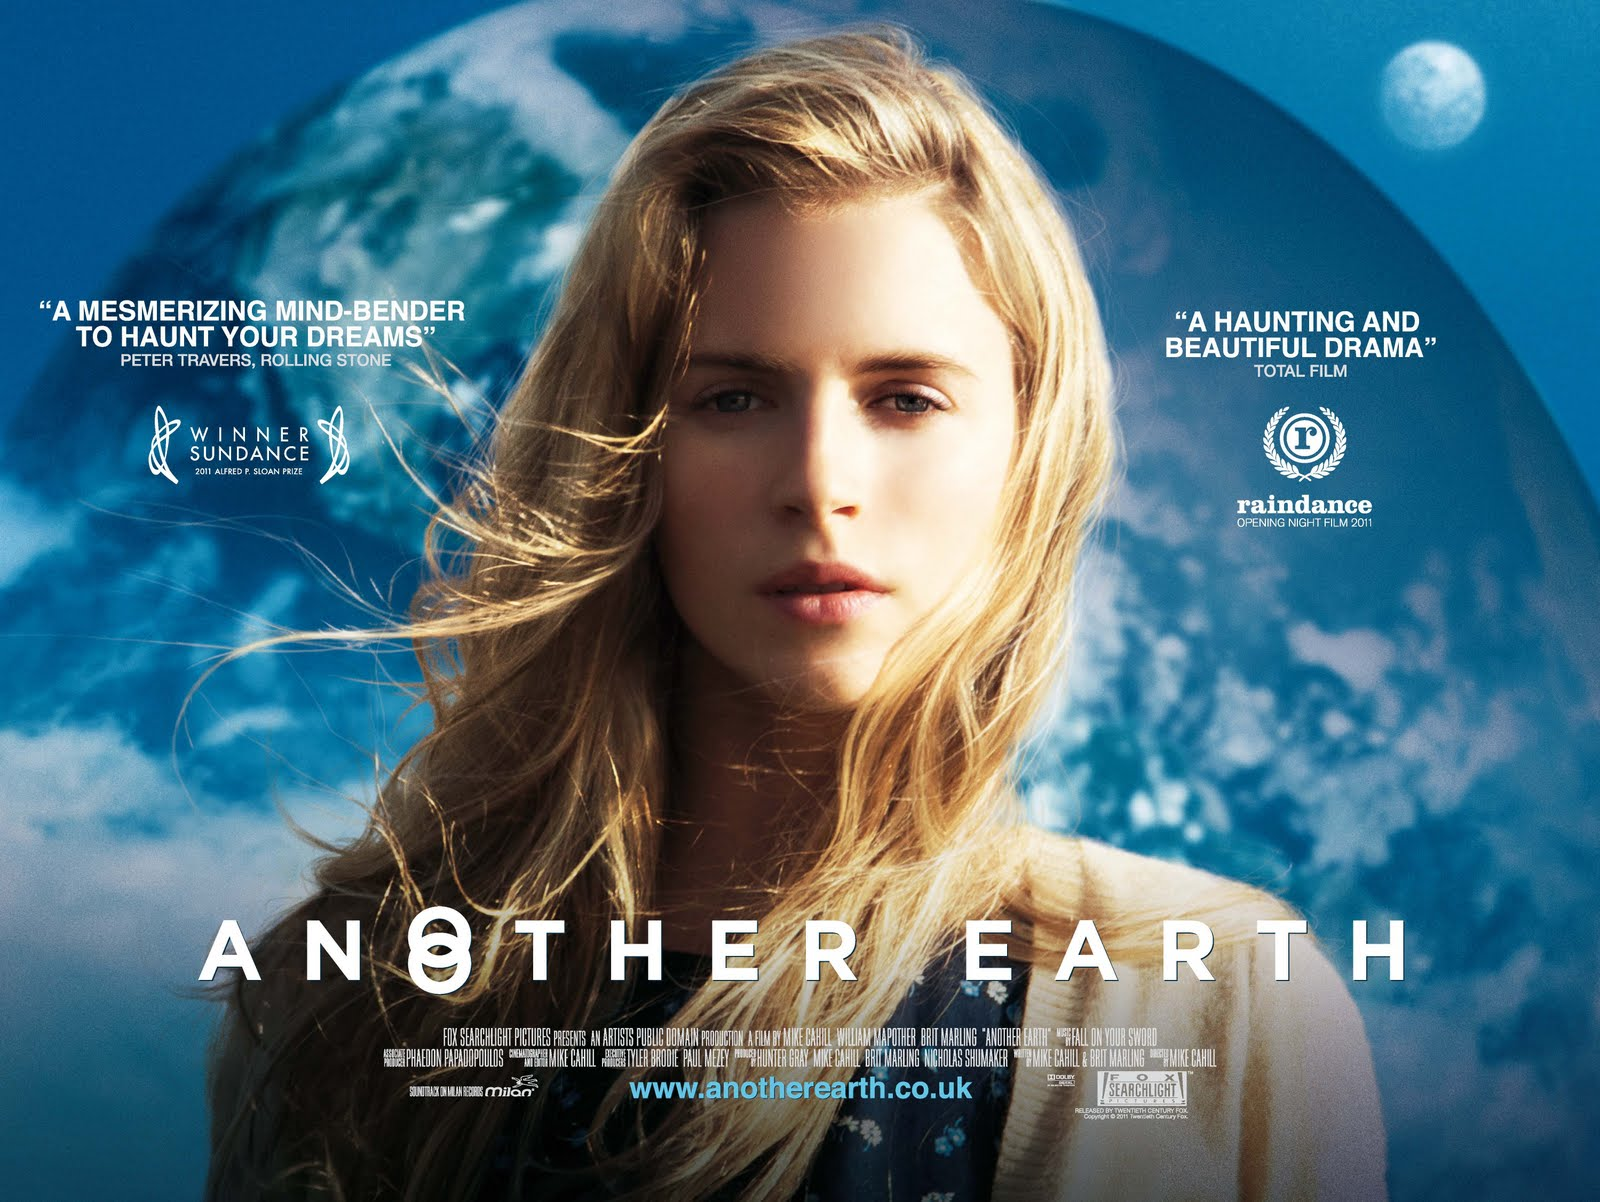 http://escapepod.org/wp-content/uploads/2012/06/ea_anotherearth.jpg